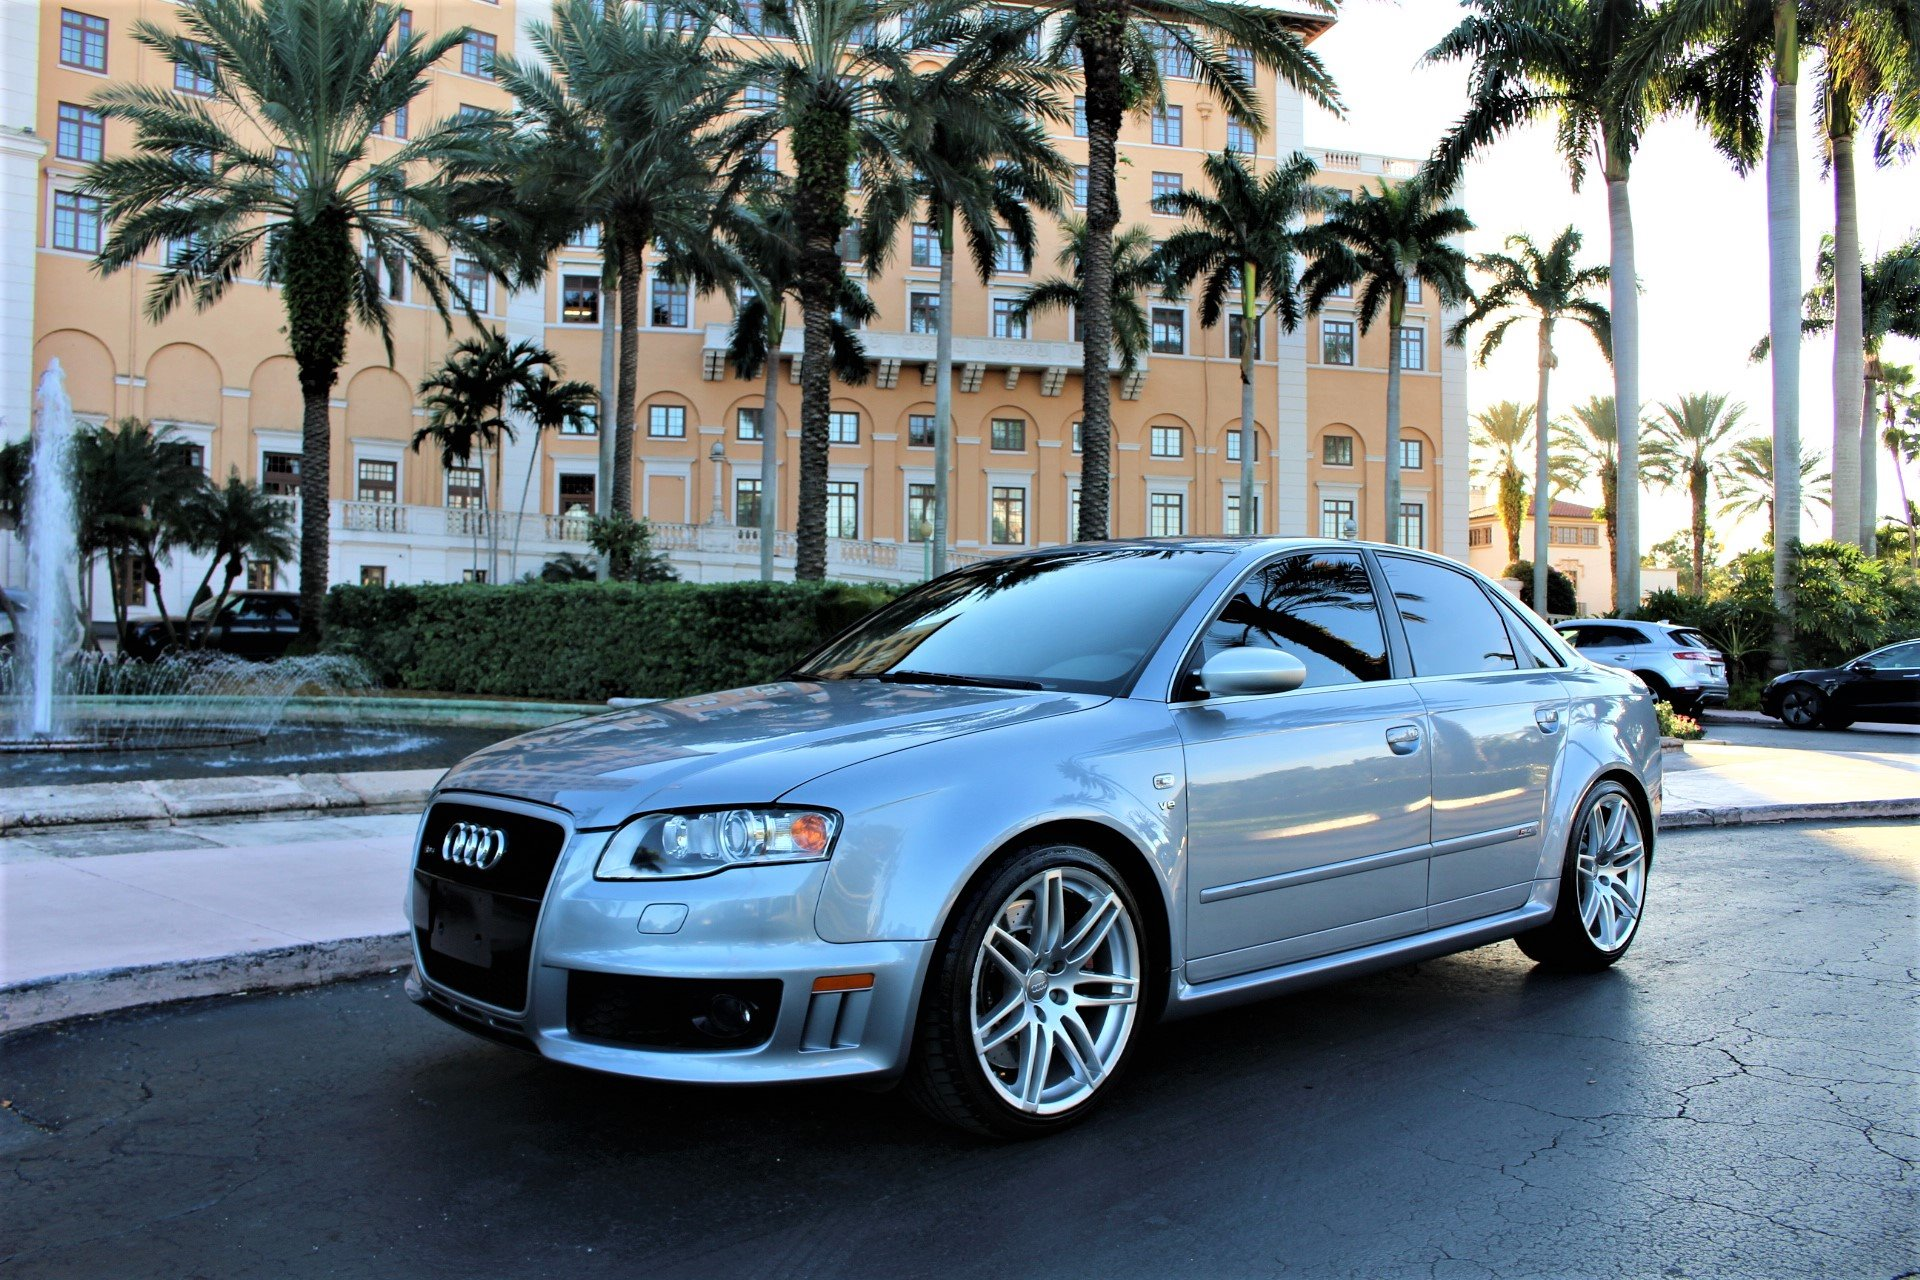 Used 2008 Audi RS 4 quattro for sale Sold at The Gables Sports Cars in Miami FL 33146 3